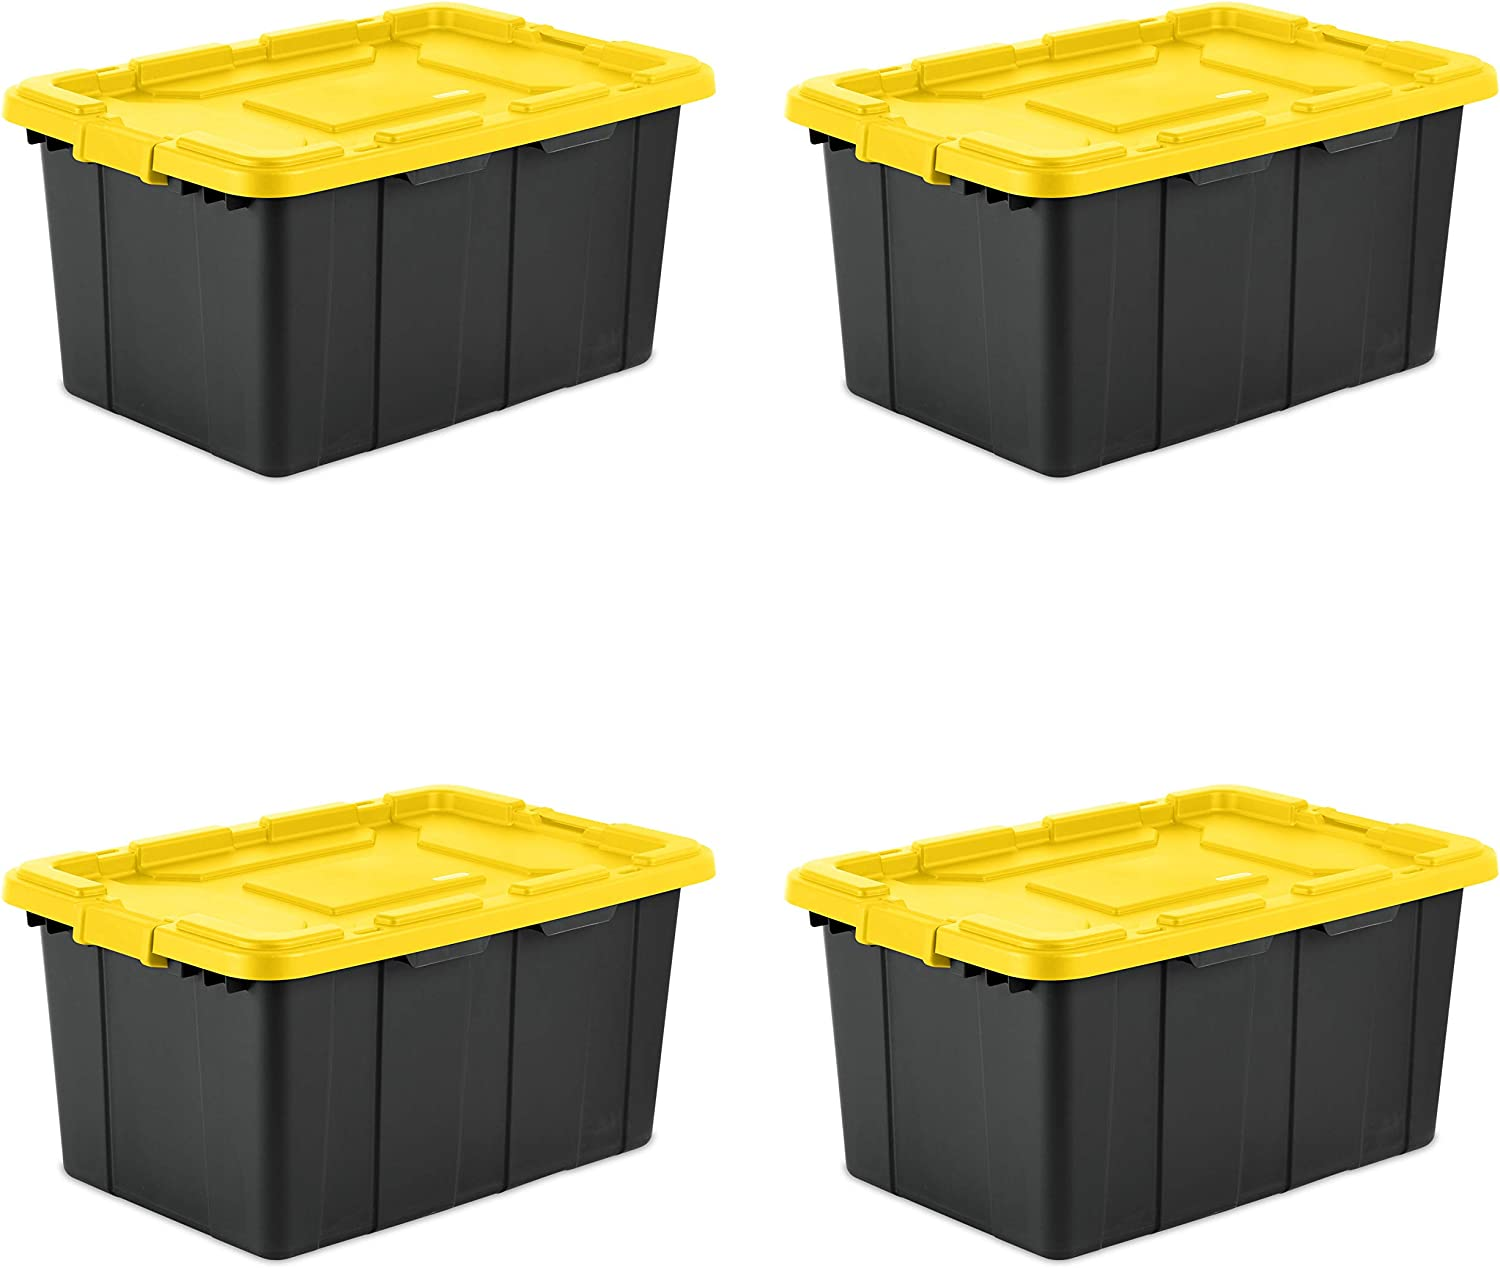 Sterilite 14669Y04 27 Gallon Liter Industrial Tote, Large, Yellow Lily lid with Black Base